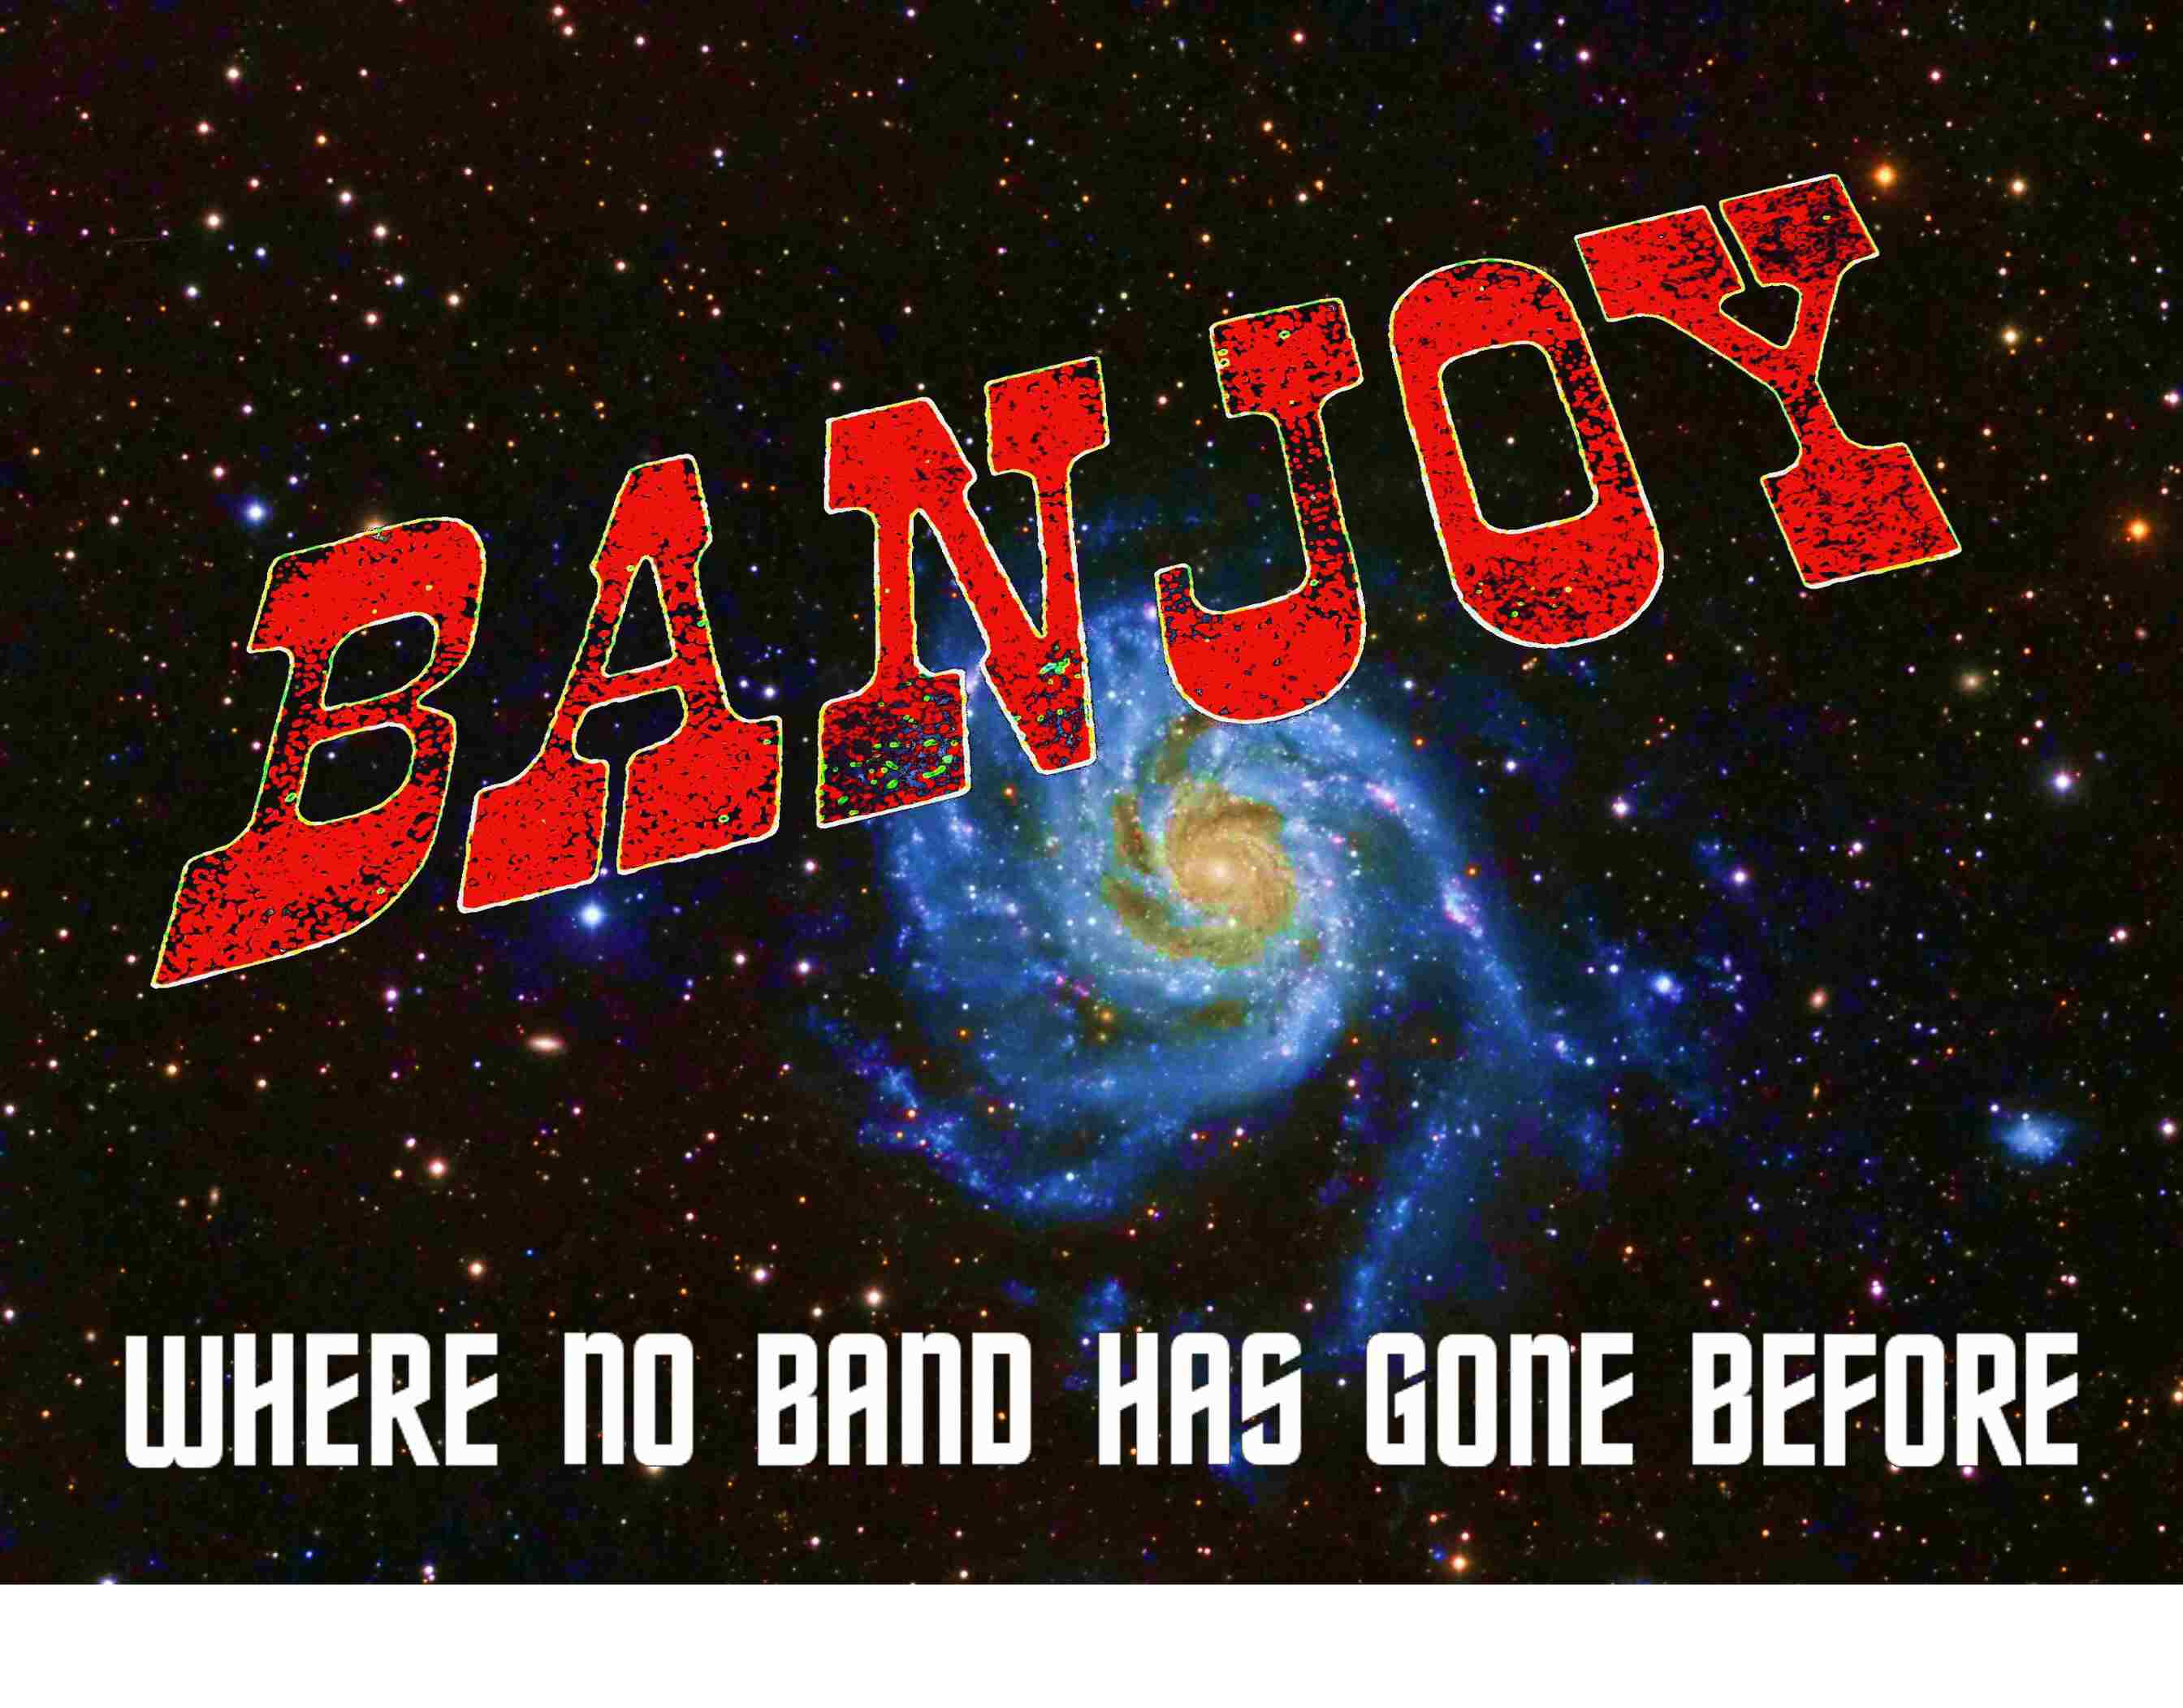 Banjoy Galaxy Where No Band 2